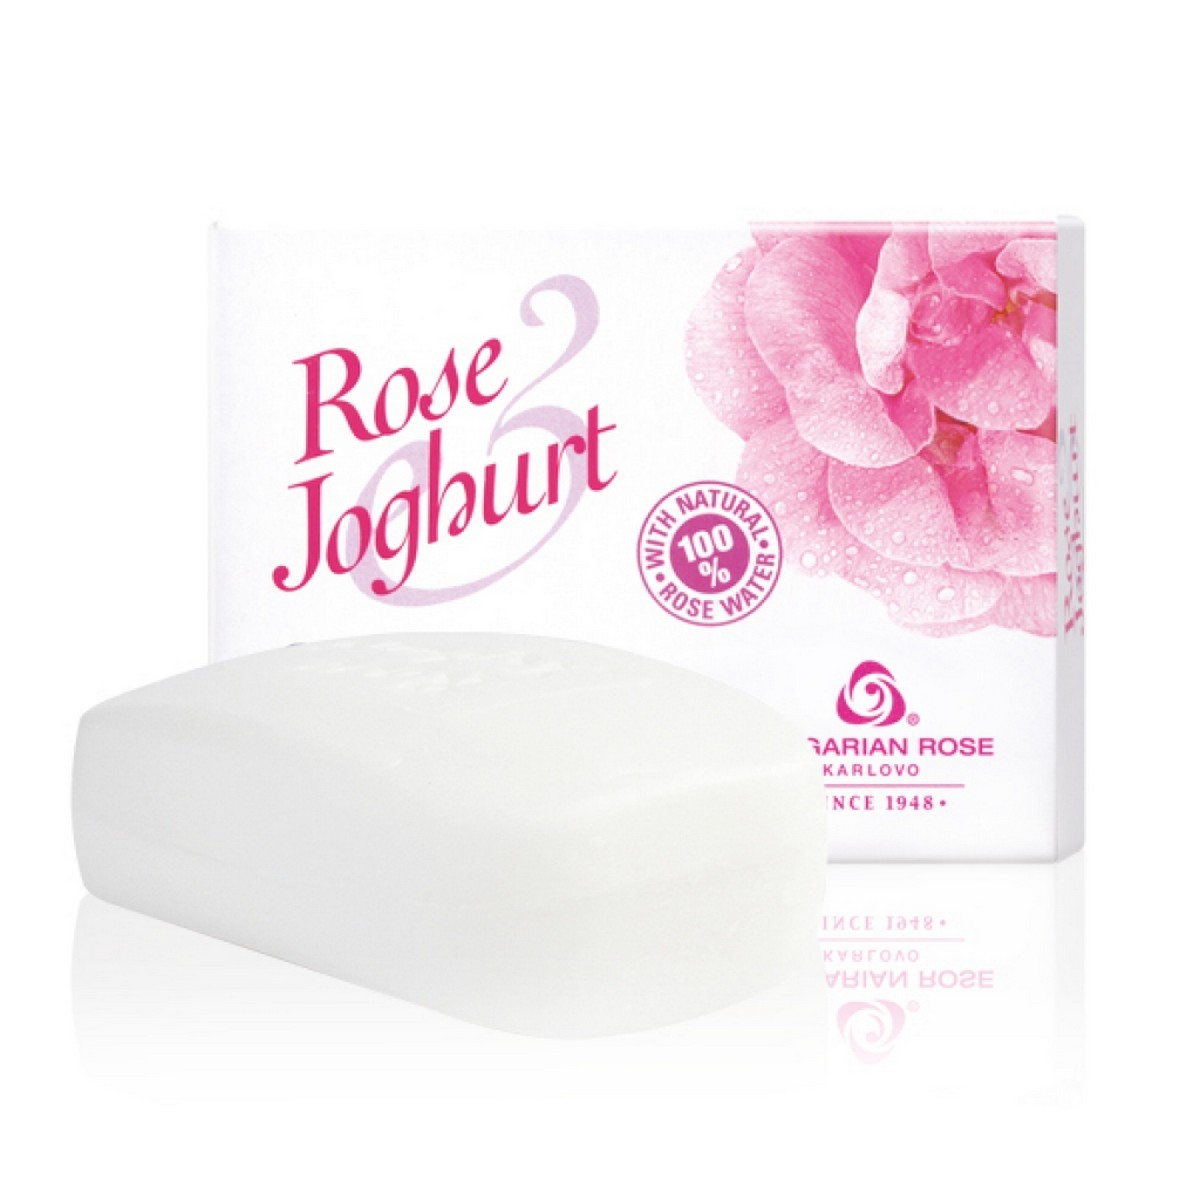 Delicate cream-soap for face, hands and body with rose oil and yoghurt Bulgarian Rose Karlovo